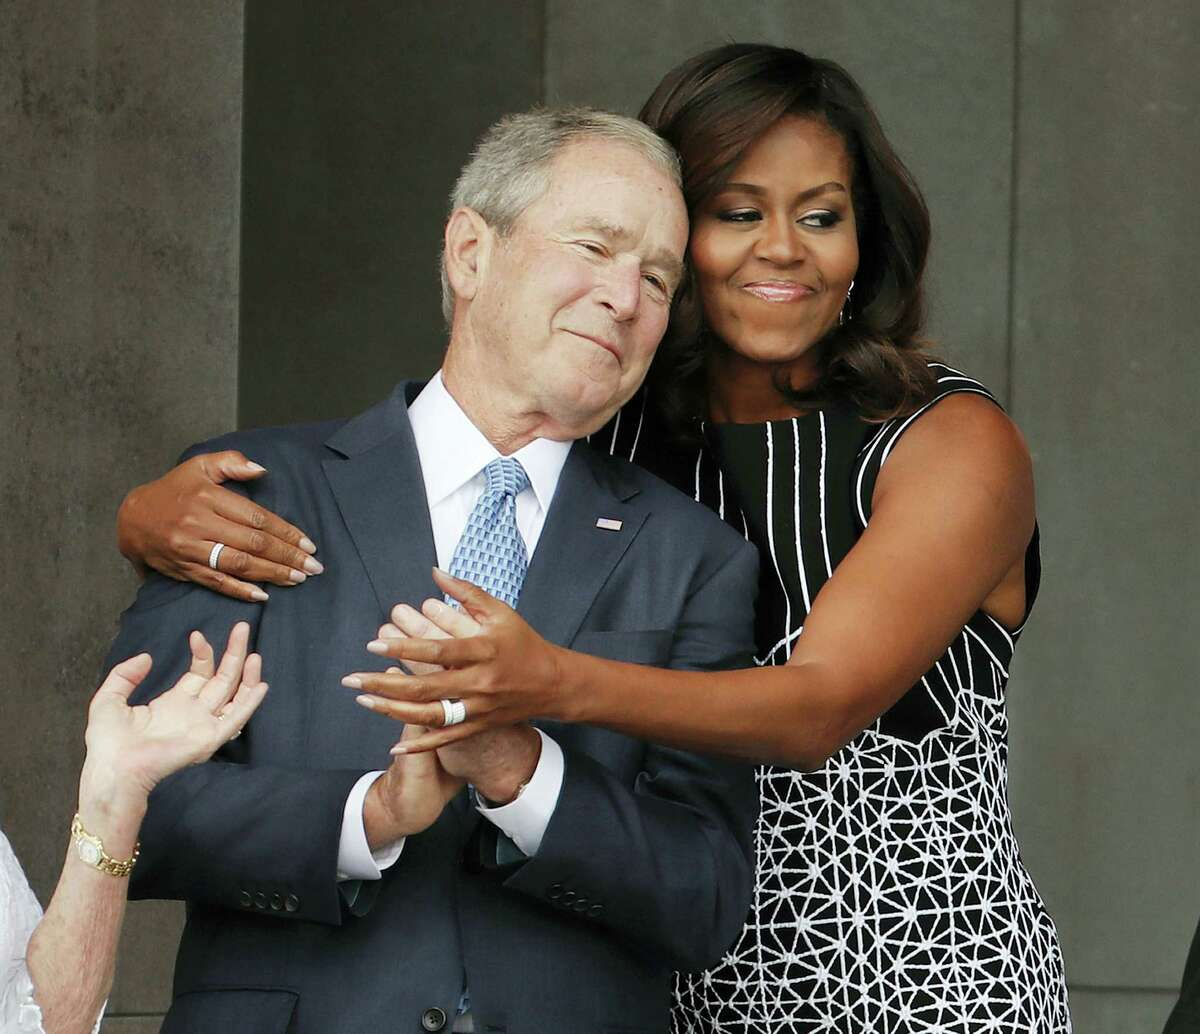 First lady Michelle Obama hugs former President George W. Bush during the dedication ceremony for the Smithsonian Museum of African American History and Culture on the National Mall in Washington, Saturday, Sept. 24, 2016.